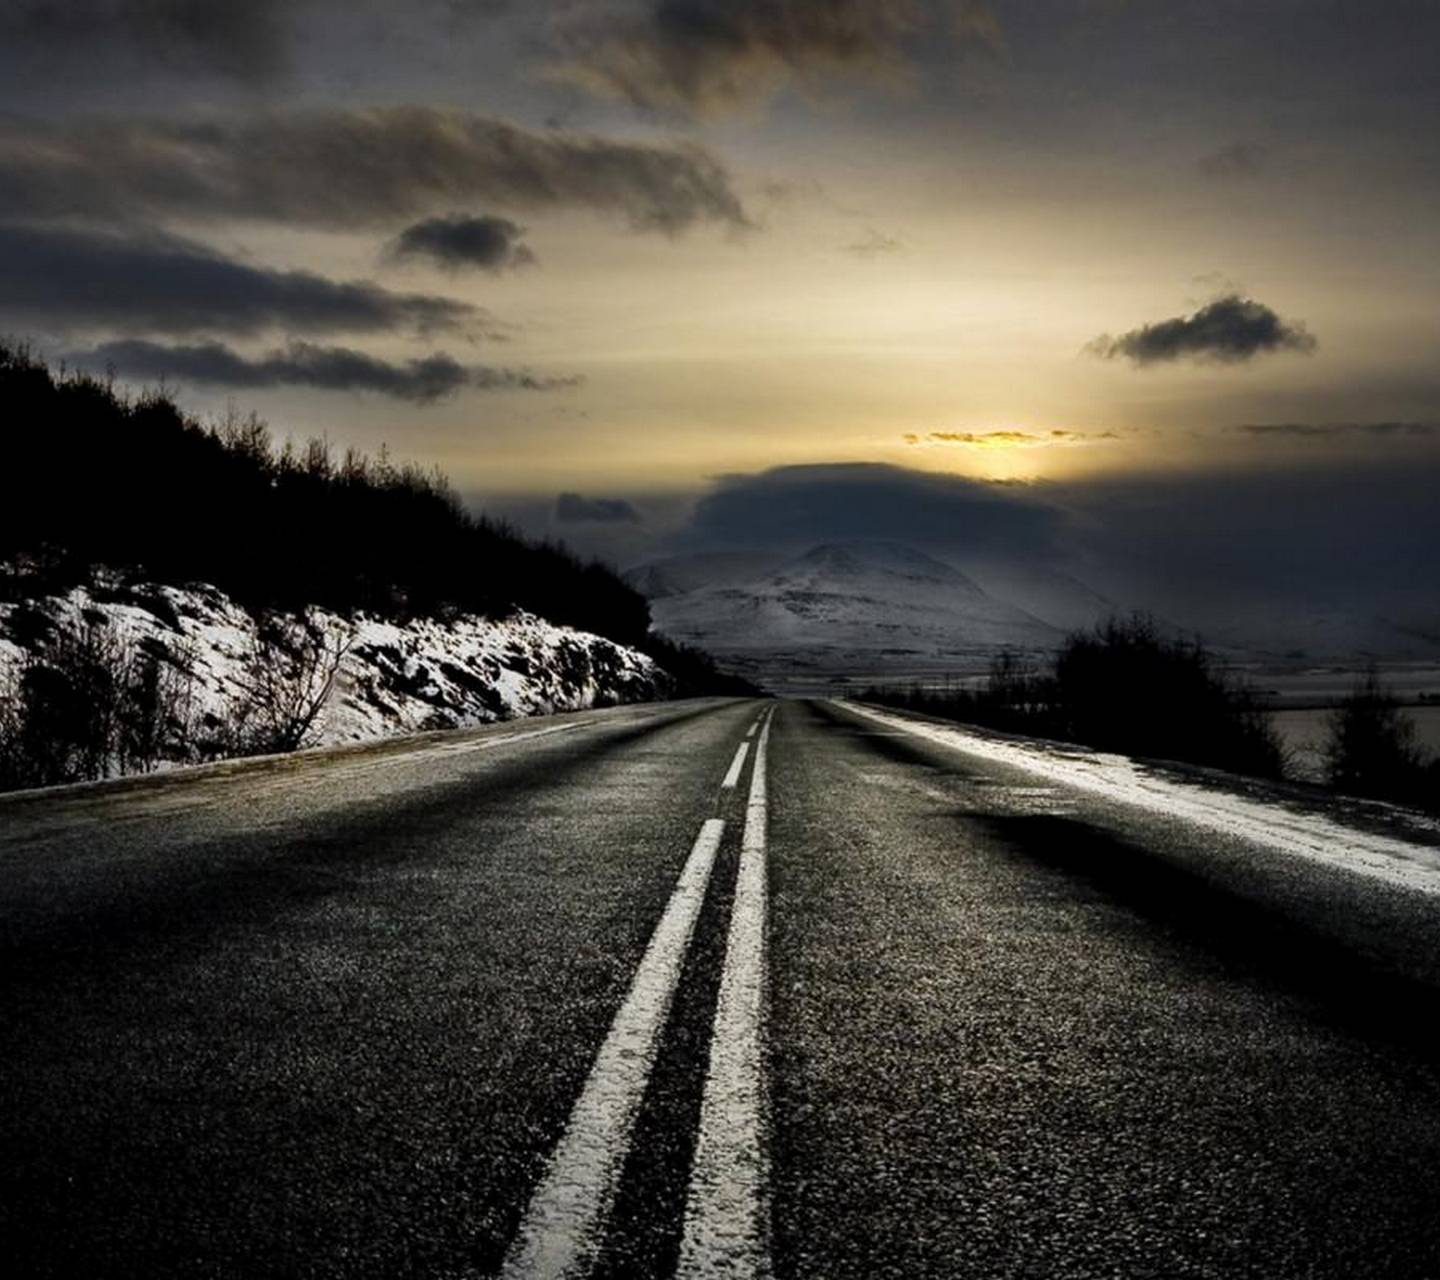 Dark Road Hd Wallpaper By Mabar7